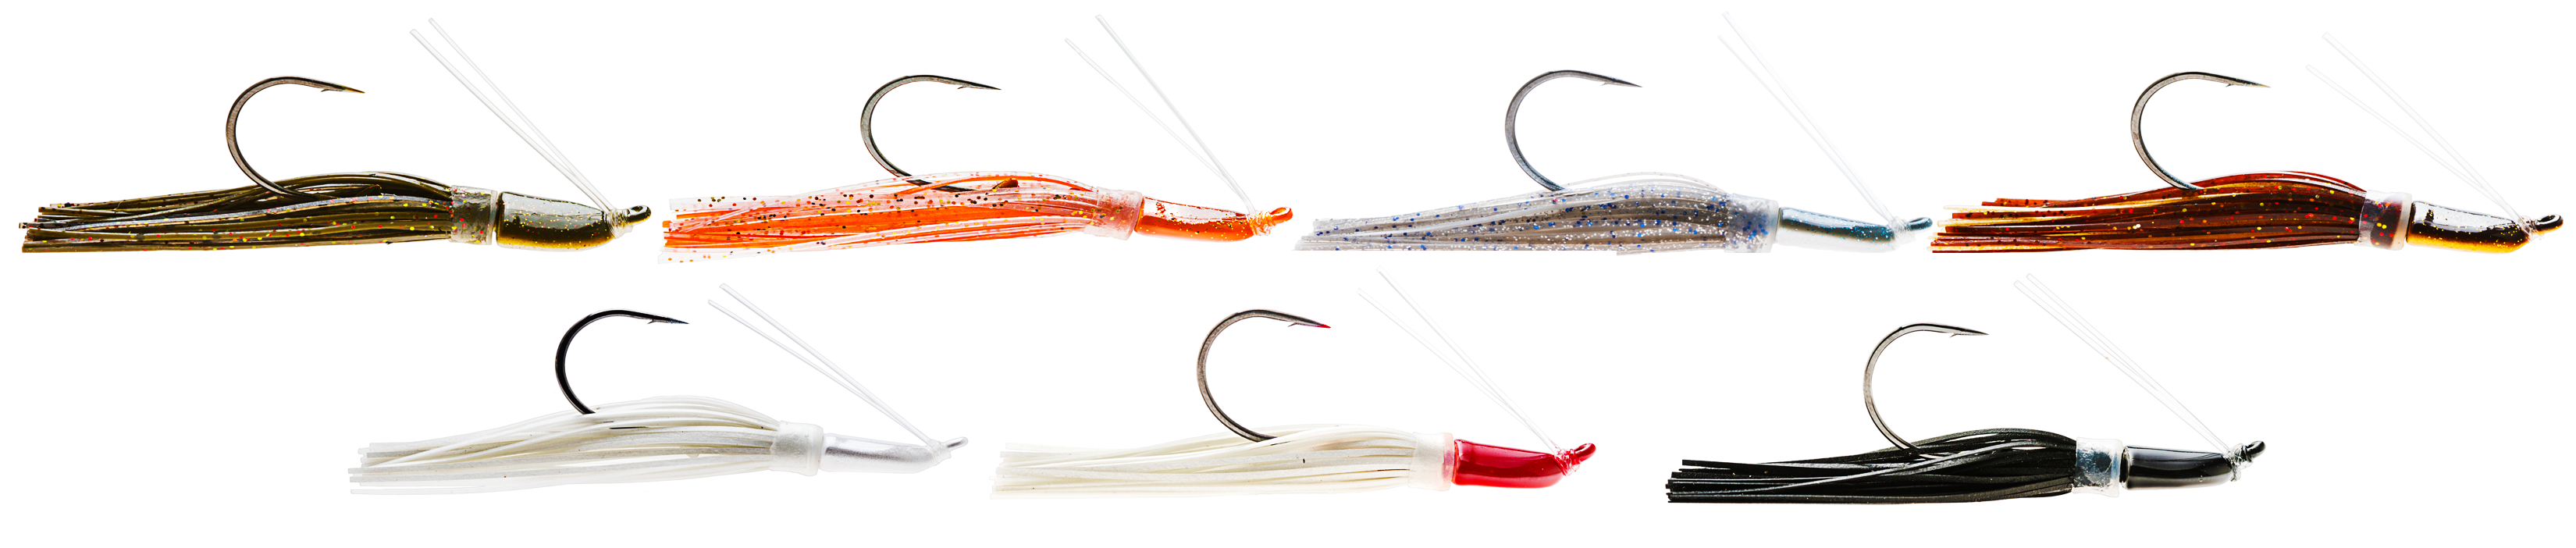 New product introduction z man btb skimmerz jig for Z man fishing products